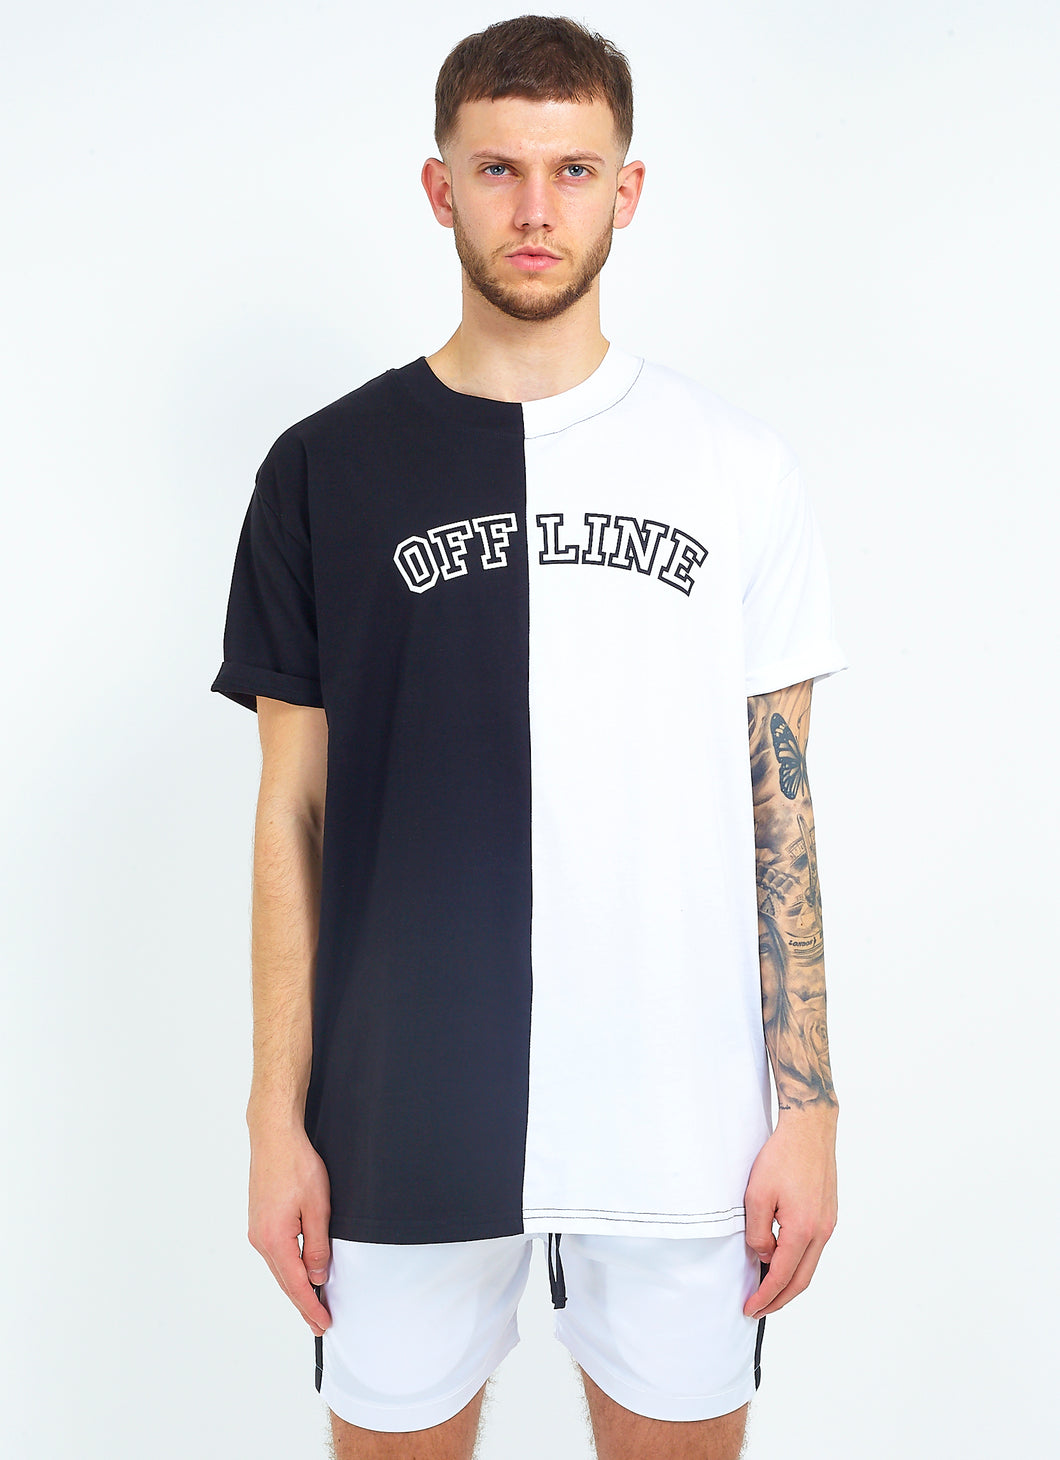 NIGHT ADDICT SPLICED BLACK AND WHITE 'OFFLINE' PRINT SPLIT TEE FRONT